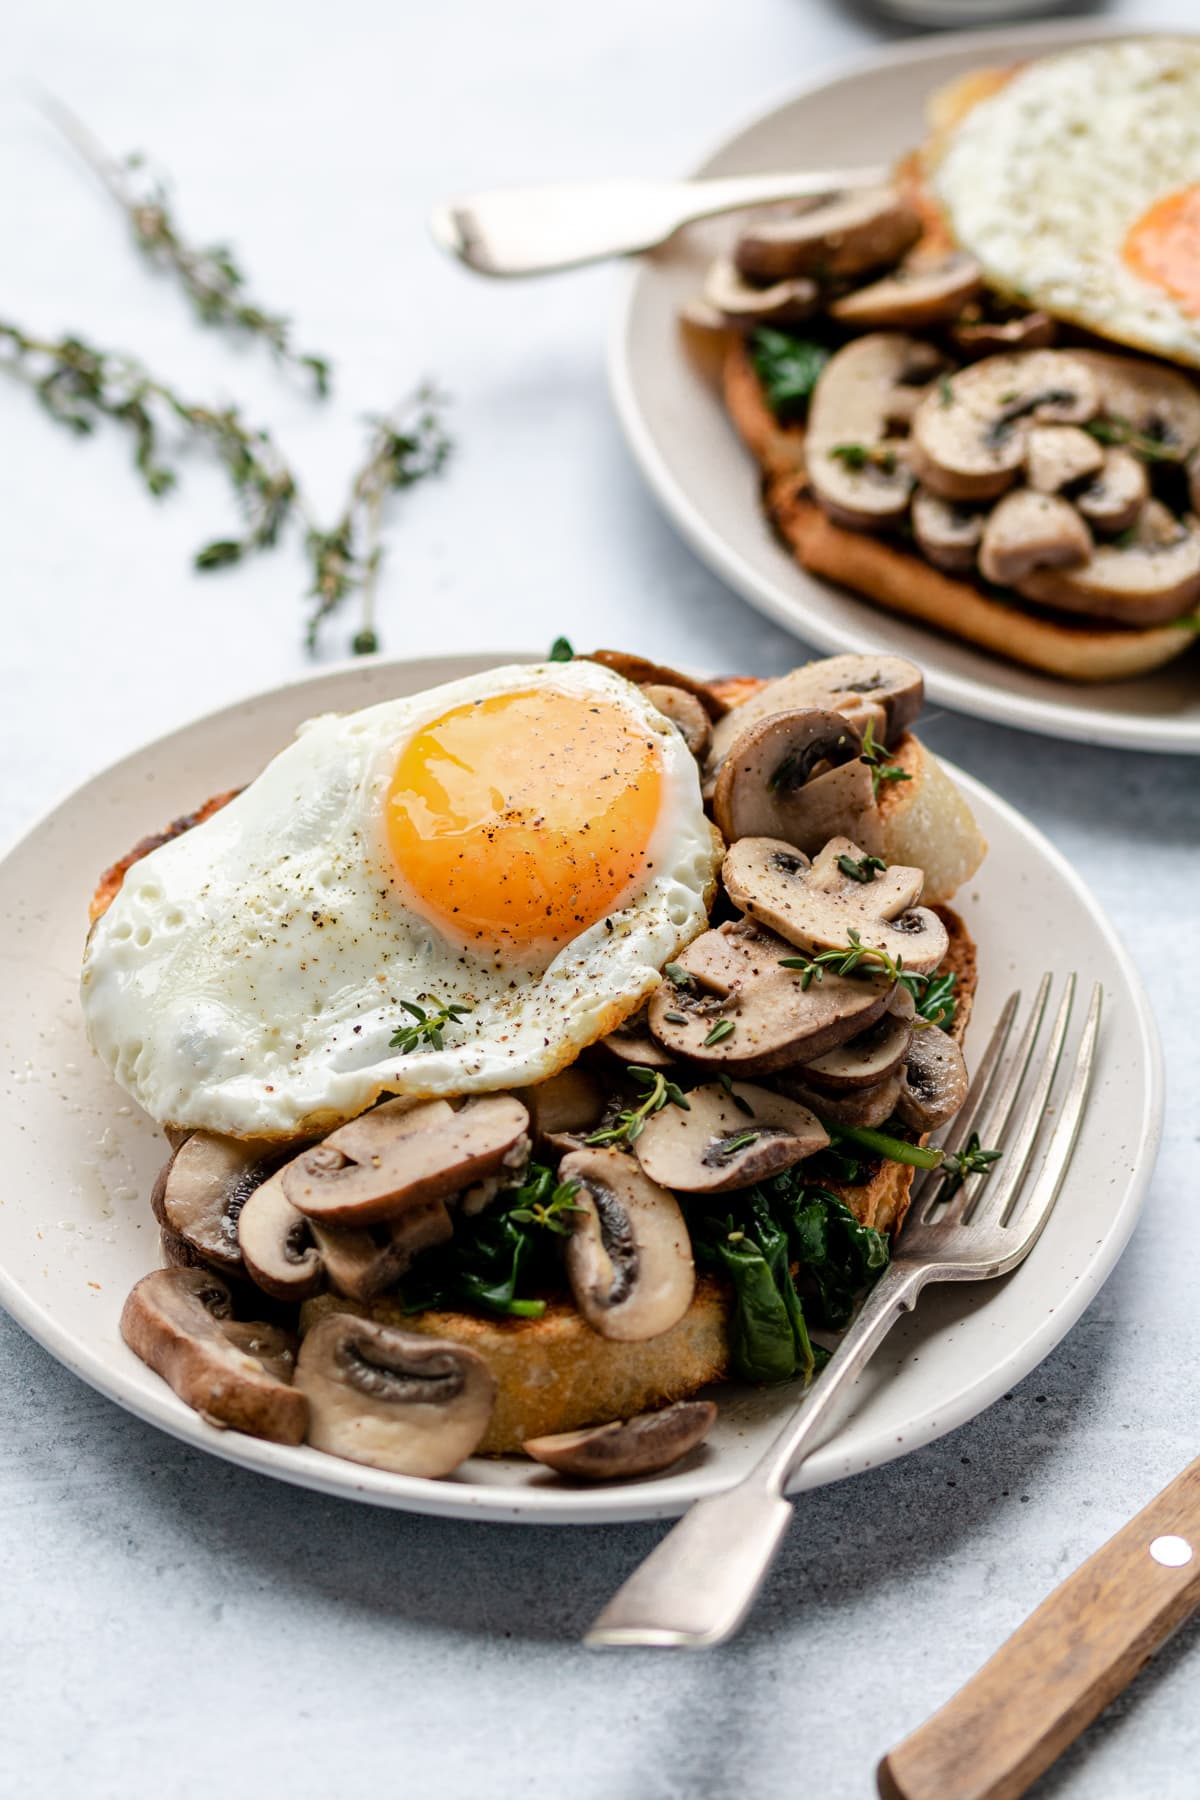 Mushrooms and wilted spinach on toasted sourdough bread topped with an egg